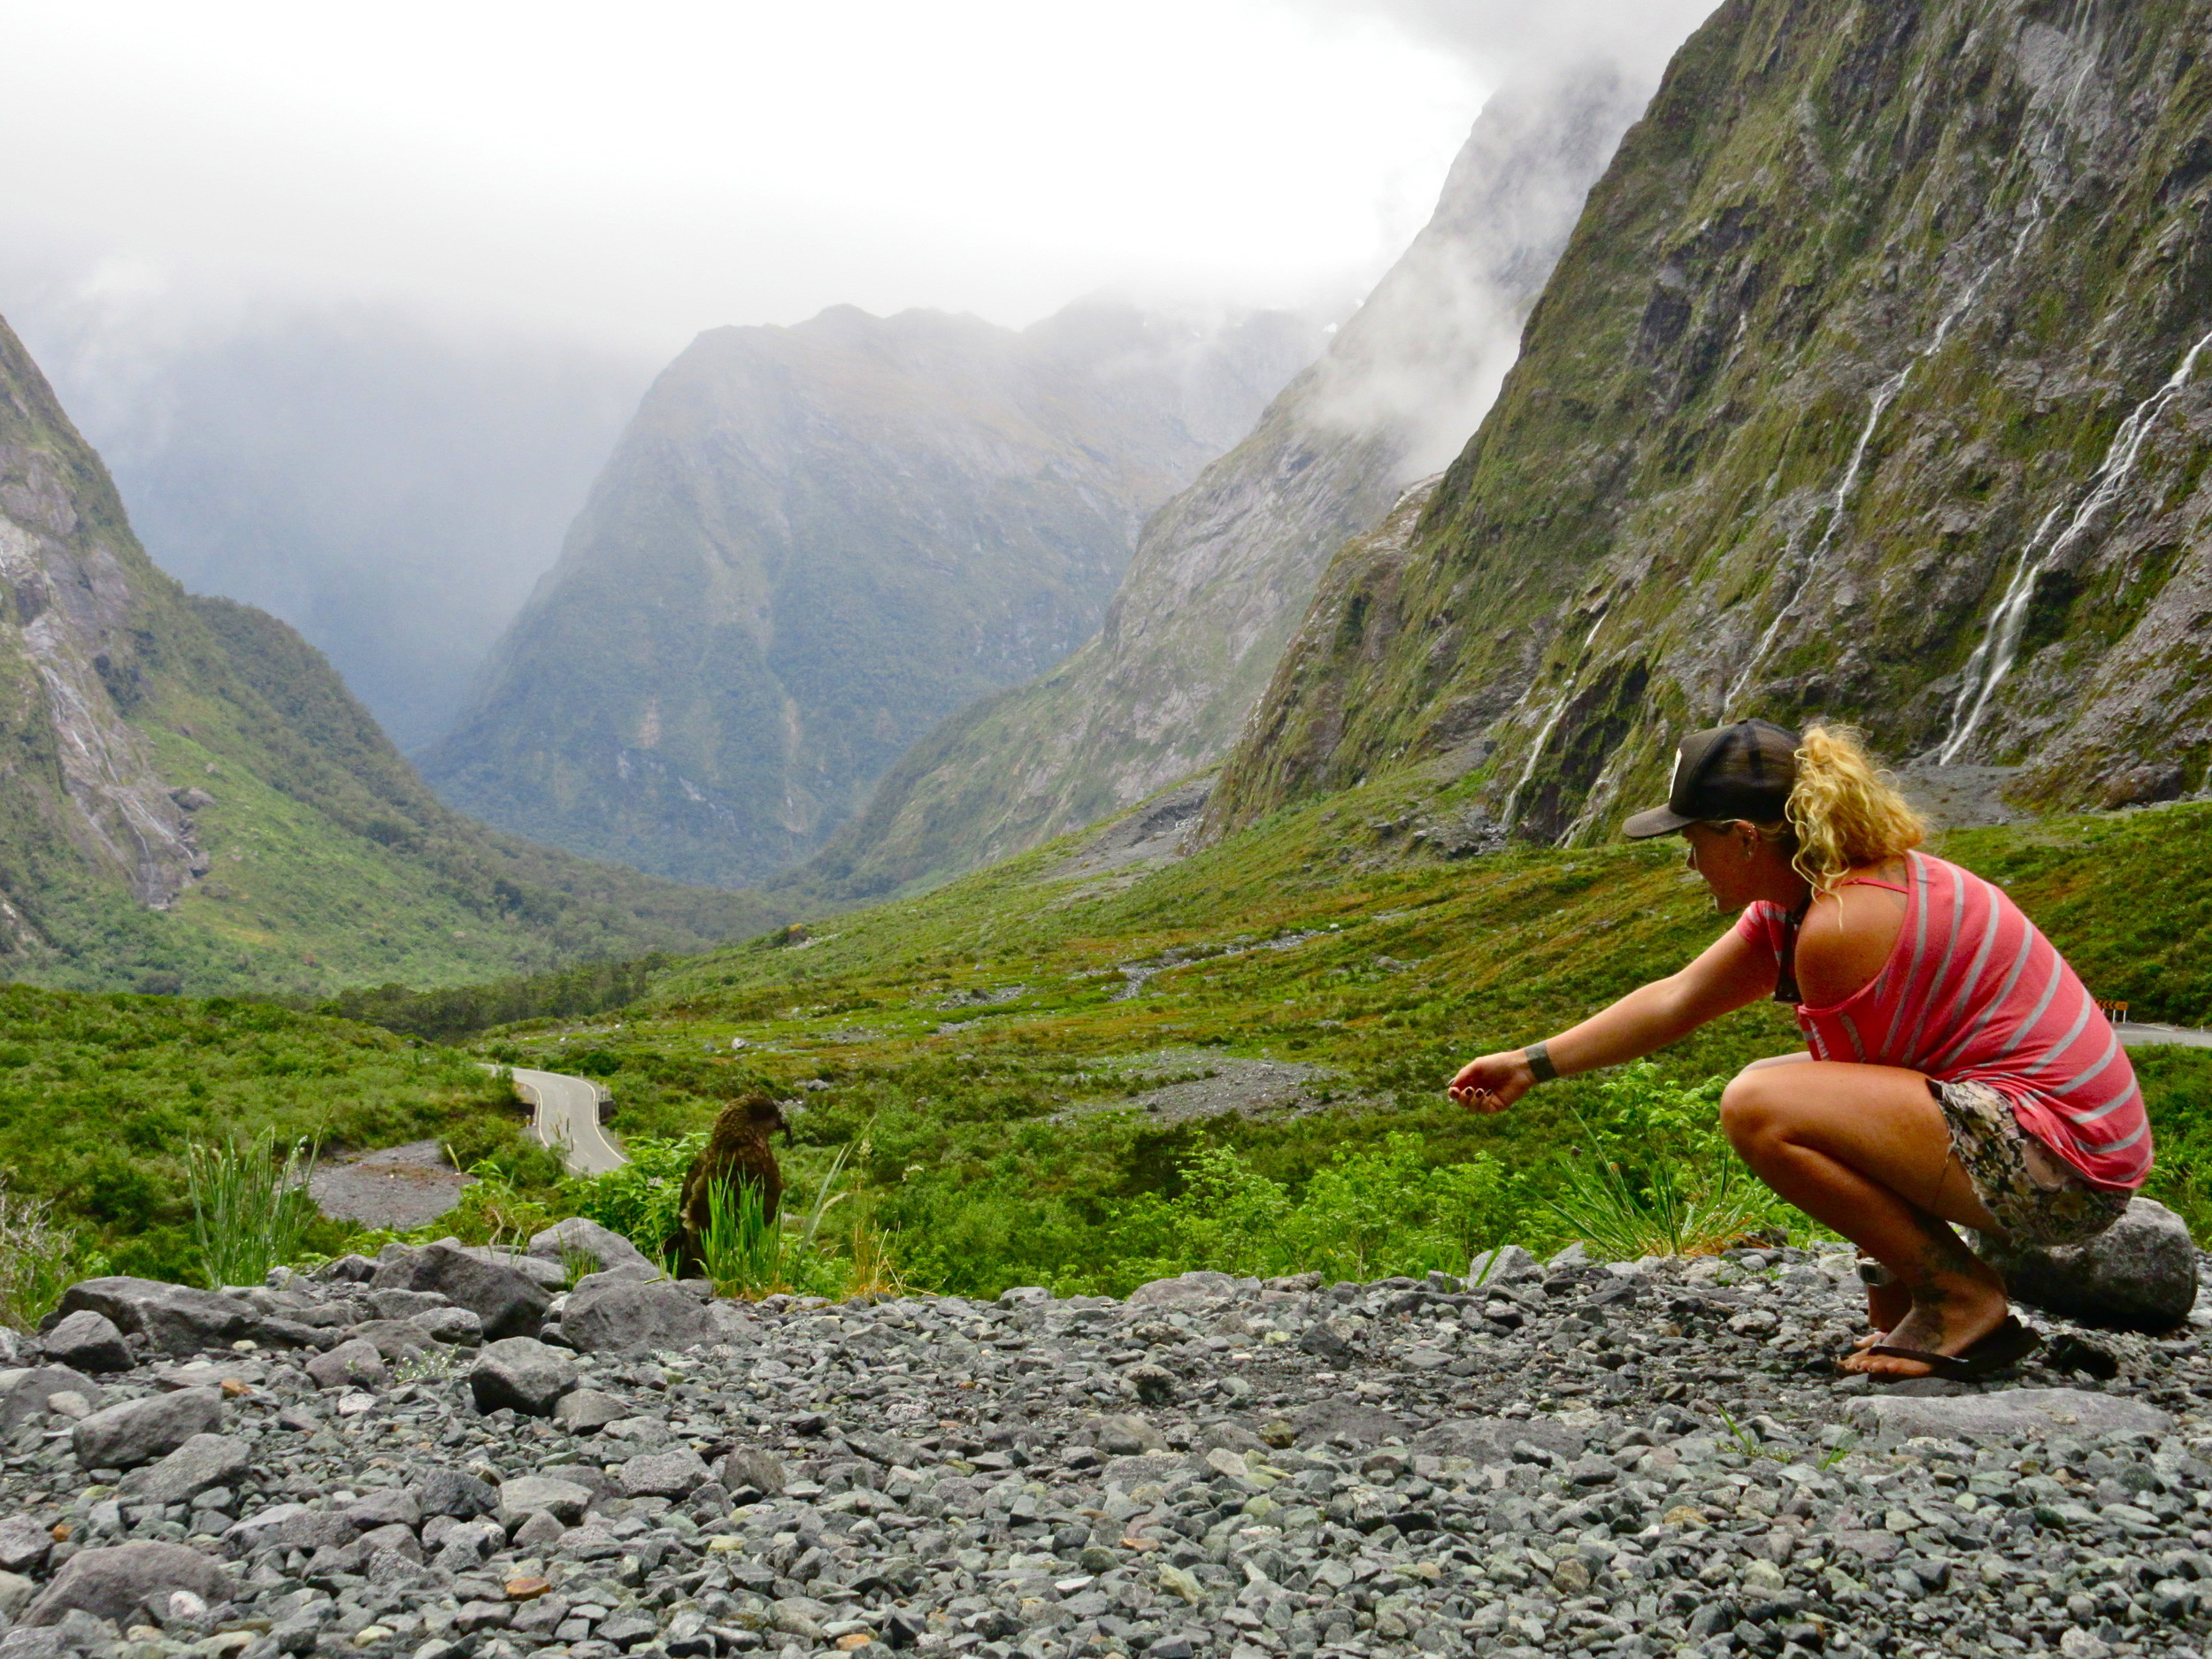 Breezy Grenier tries to coax a feathered friend at Milford Sound, a fiord on New Zealand's South Island, during a 2014 trip.